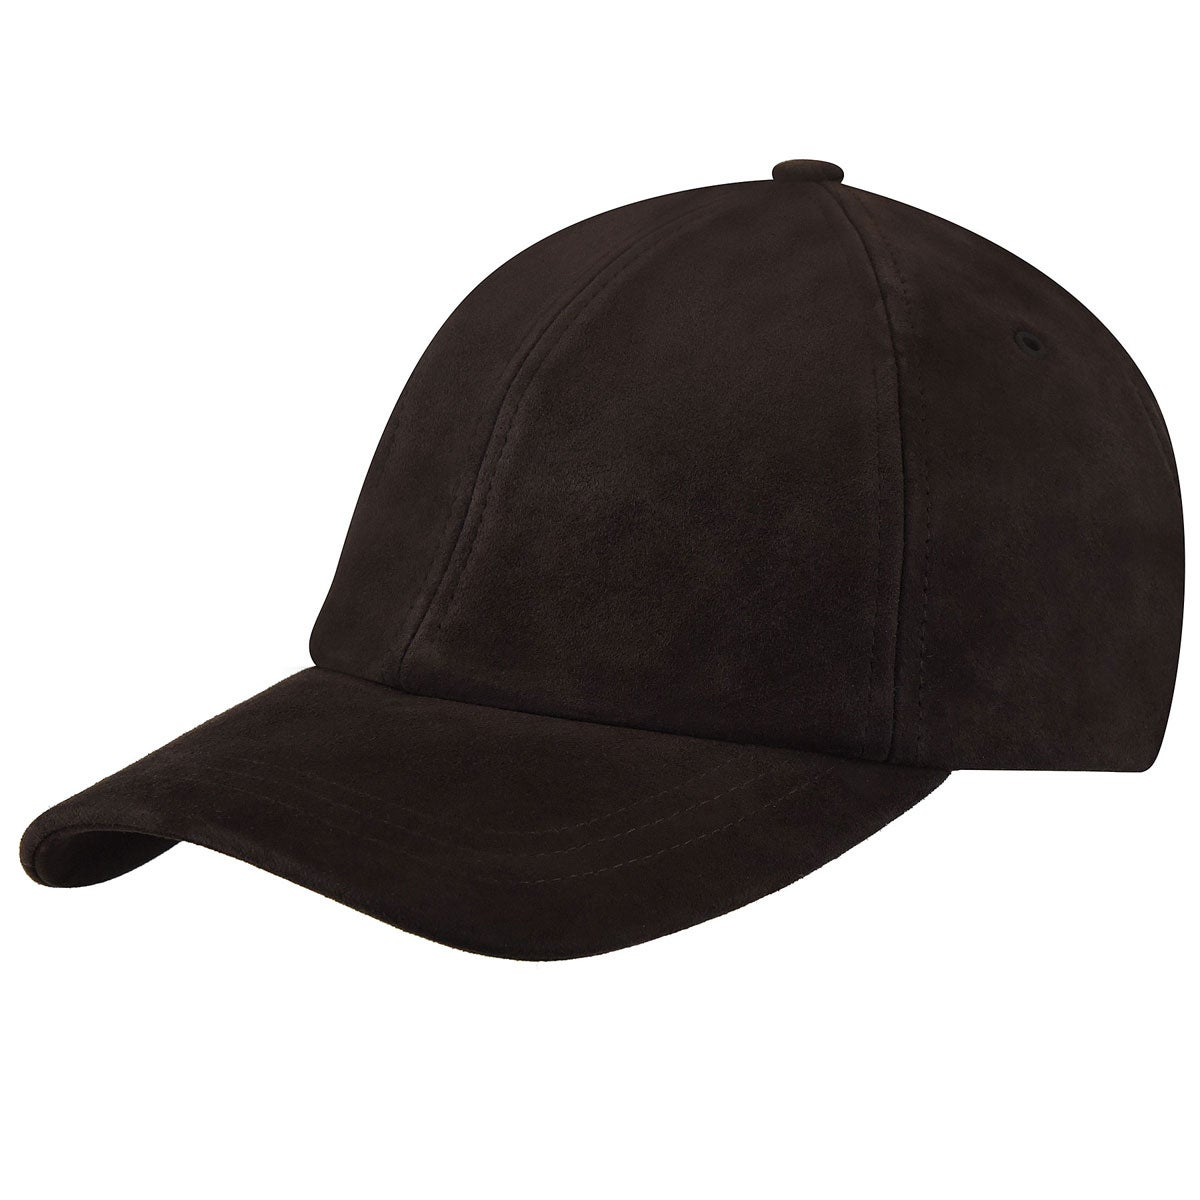 Bailey of Hollywood Busby Baseball Cap in Chocolate